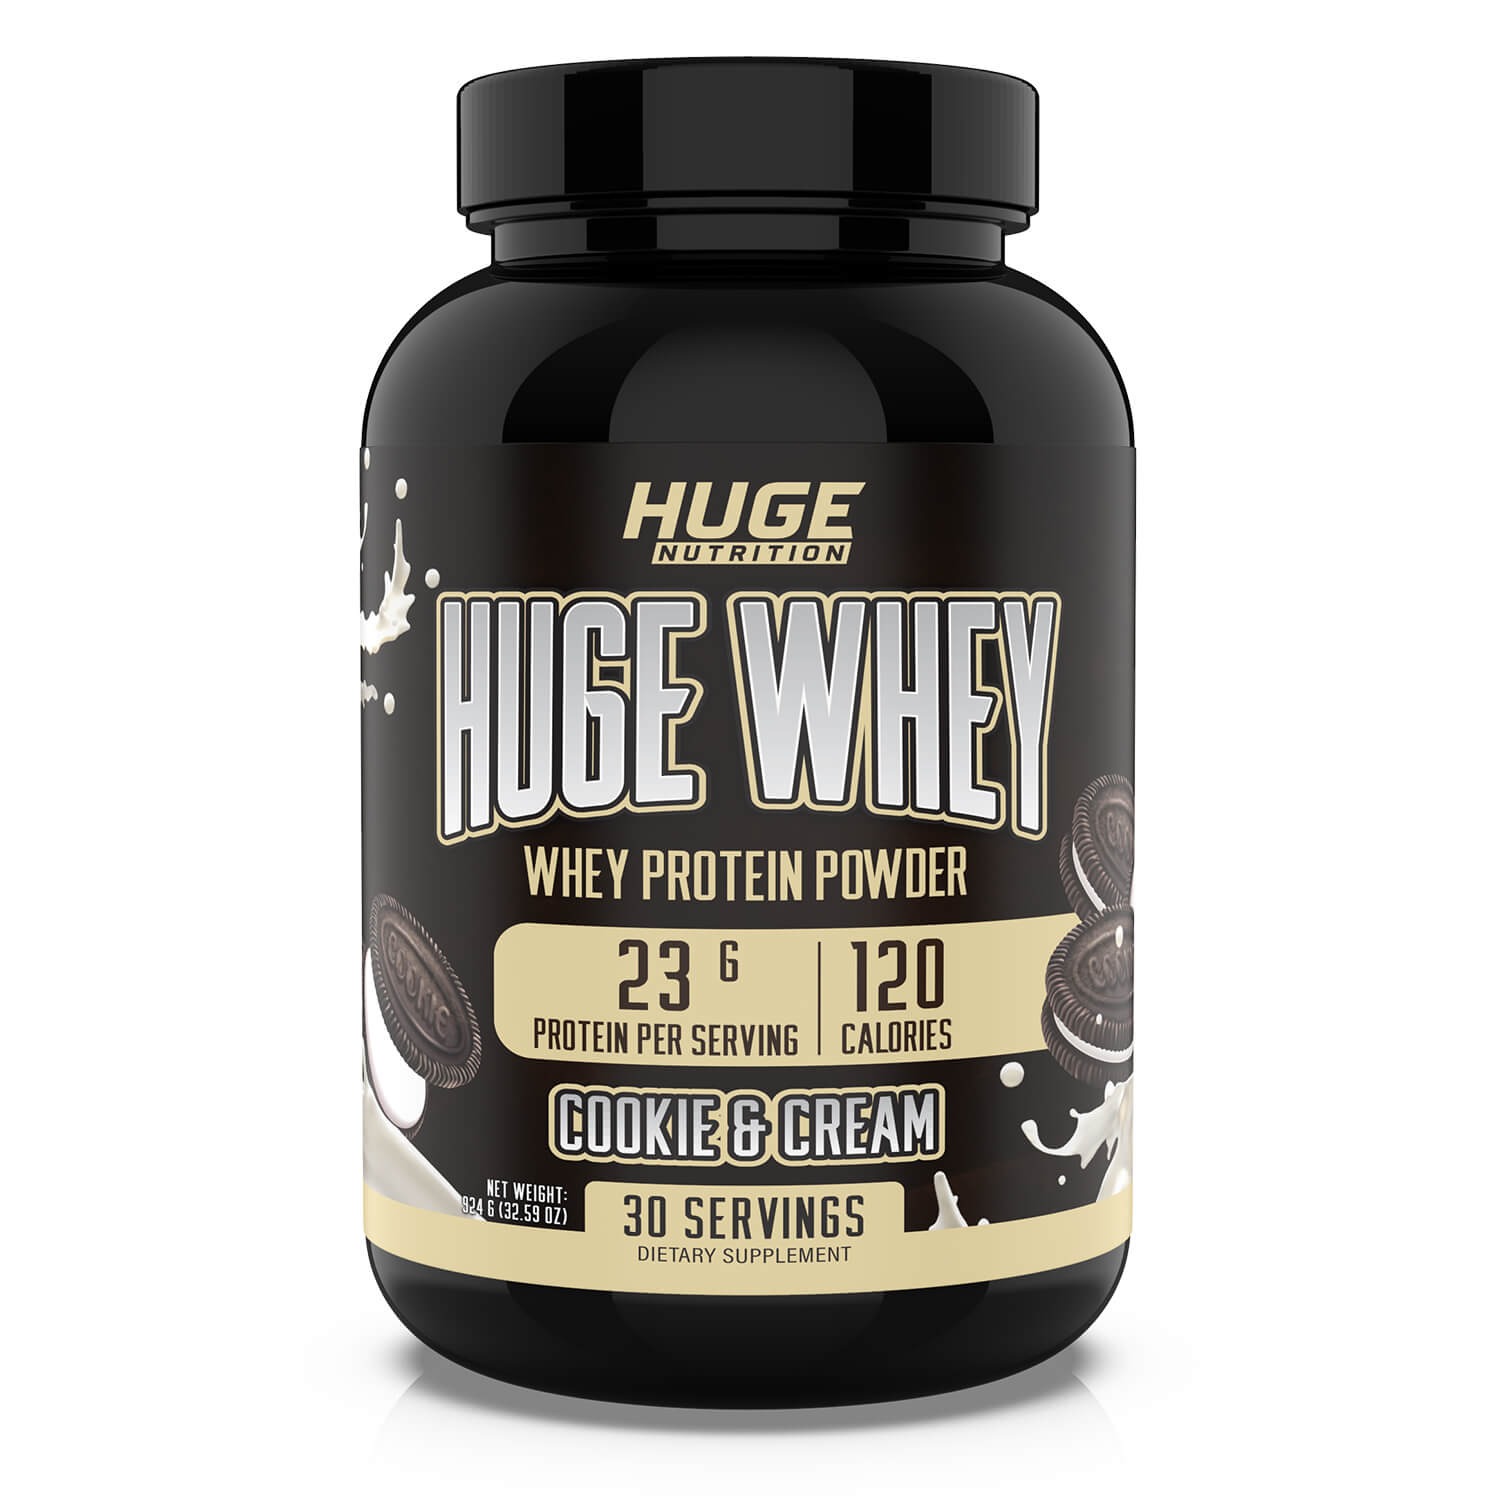 Huge Nutrition Drops A New Whey Protein Product